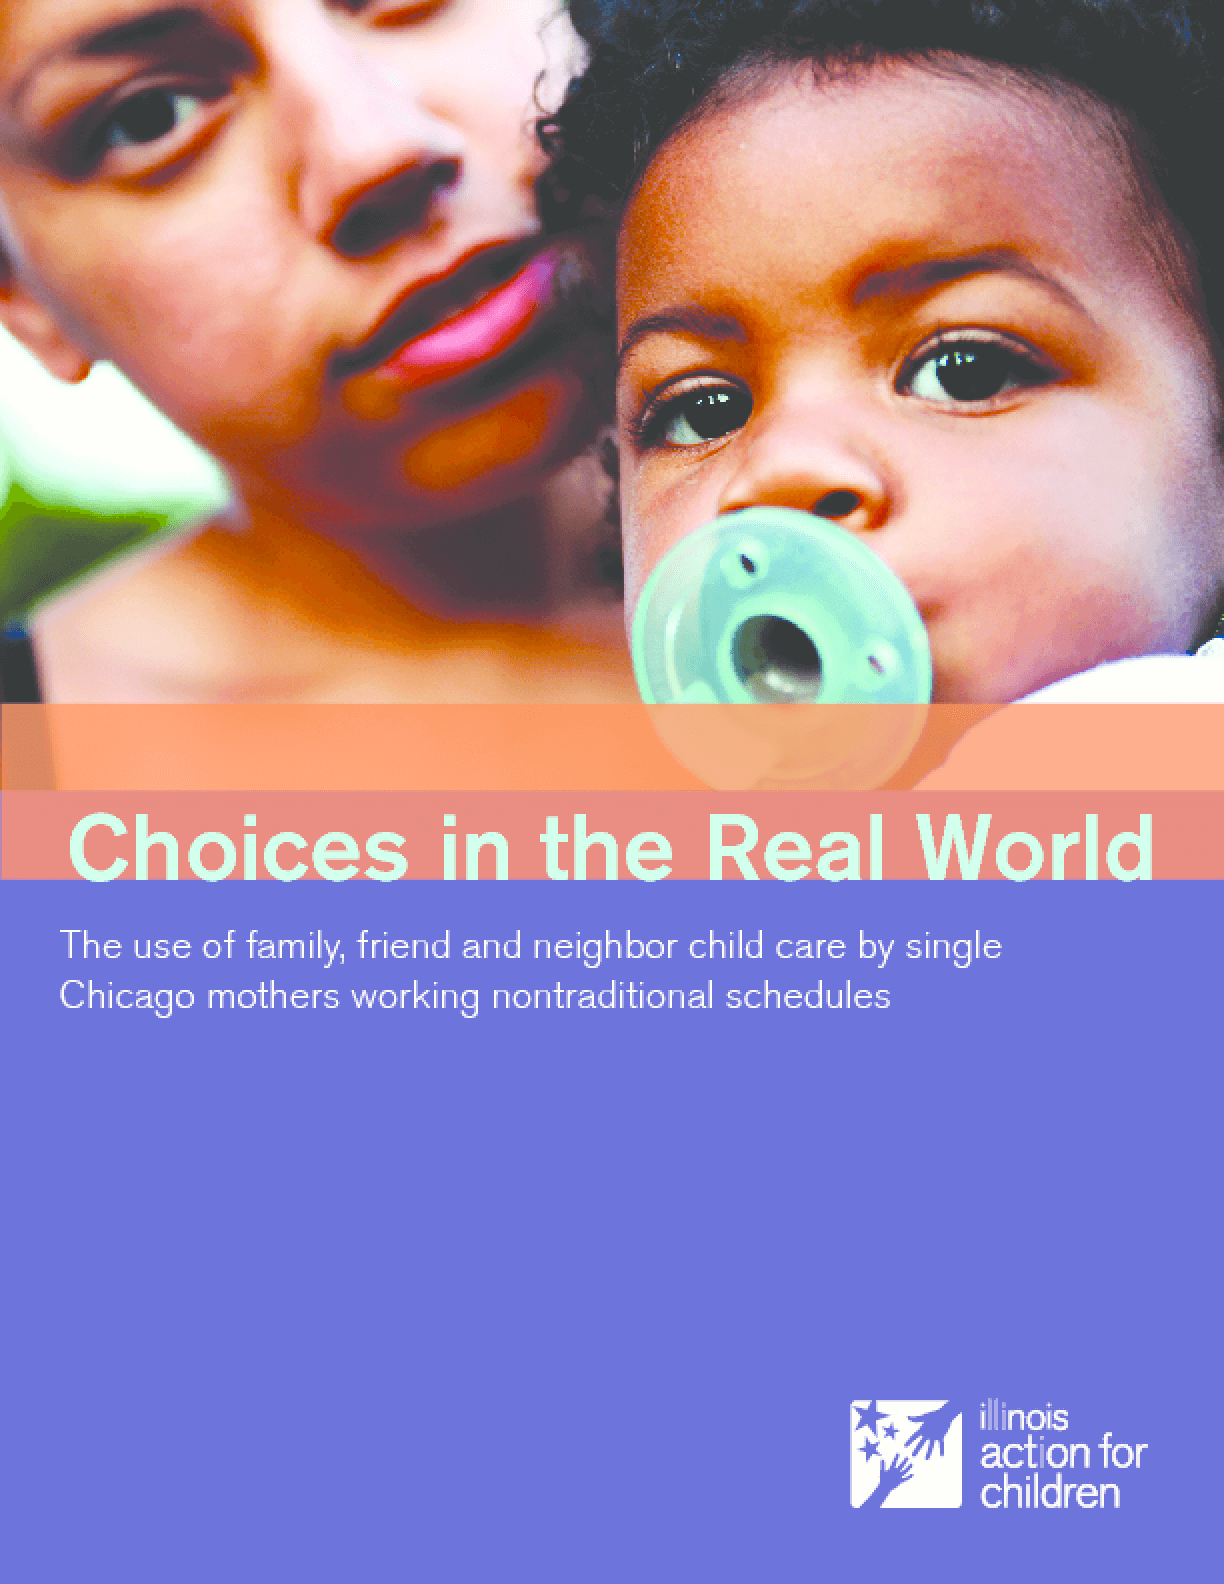 Choices in the Real World: The Use of Family, Friend and Neighbor Child Care by Single Chicago Mothers Working Nontraditional Schedules